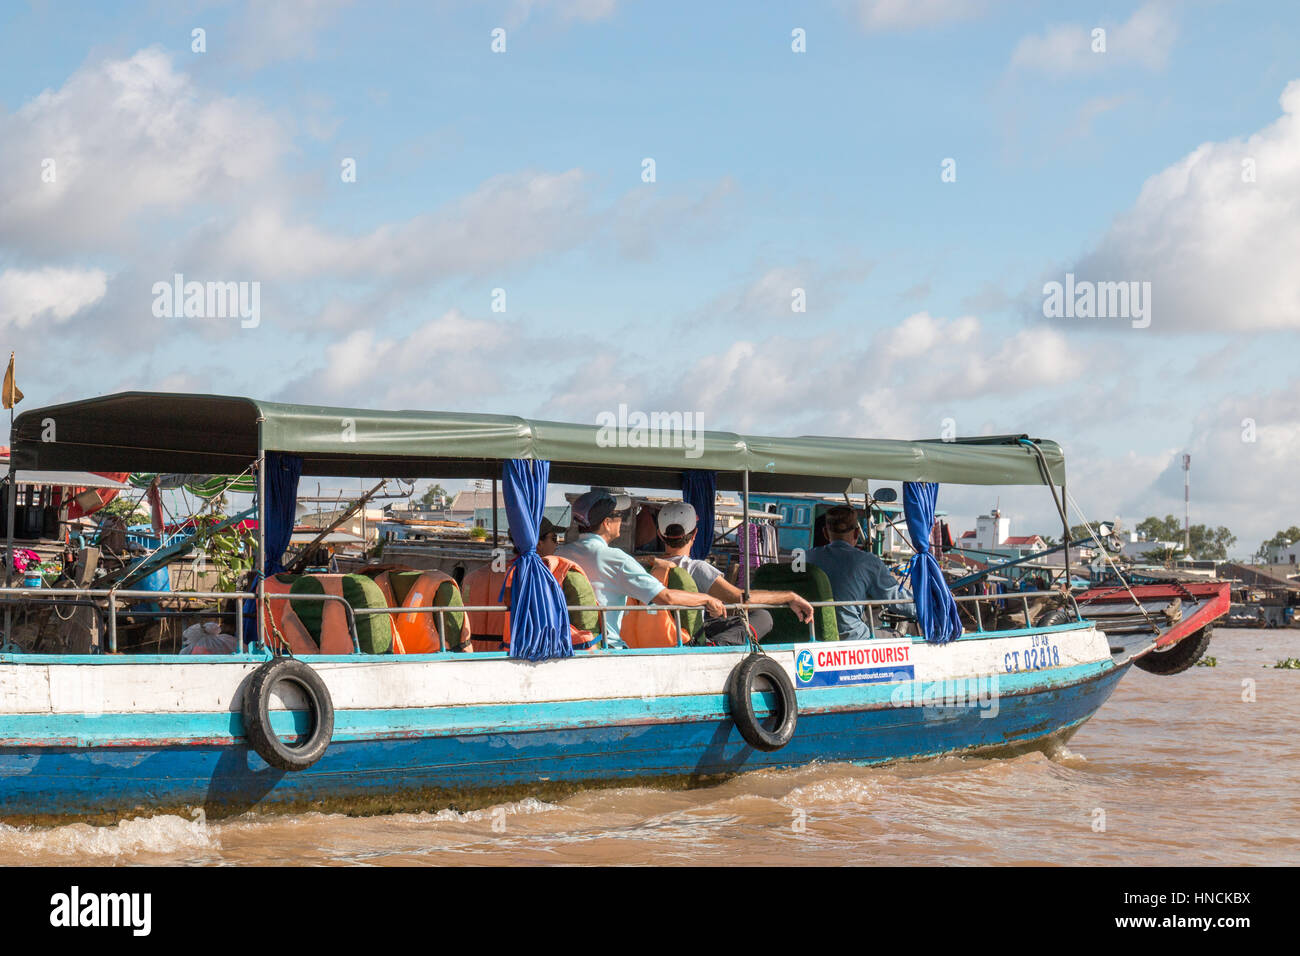 Cai Rang floating markets on the Mekong delta in Vietnam, Asia - Stock Image